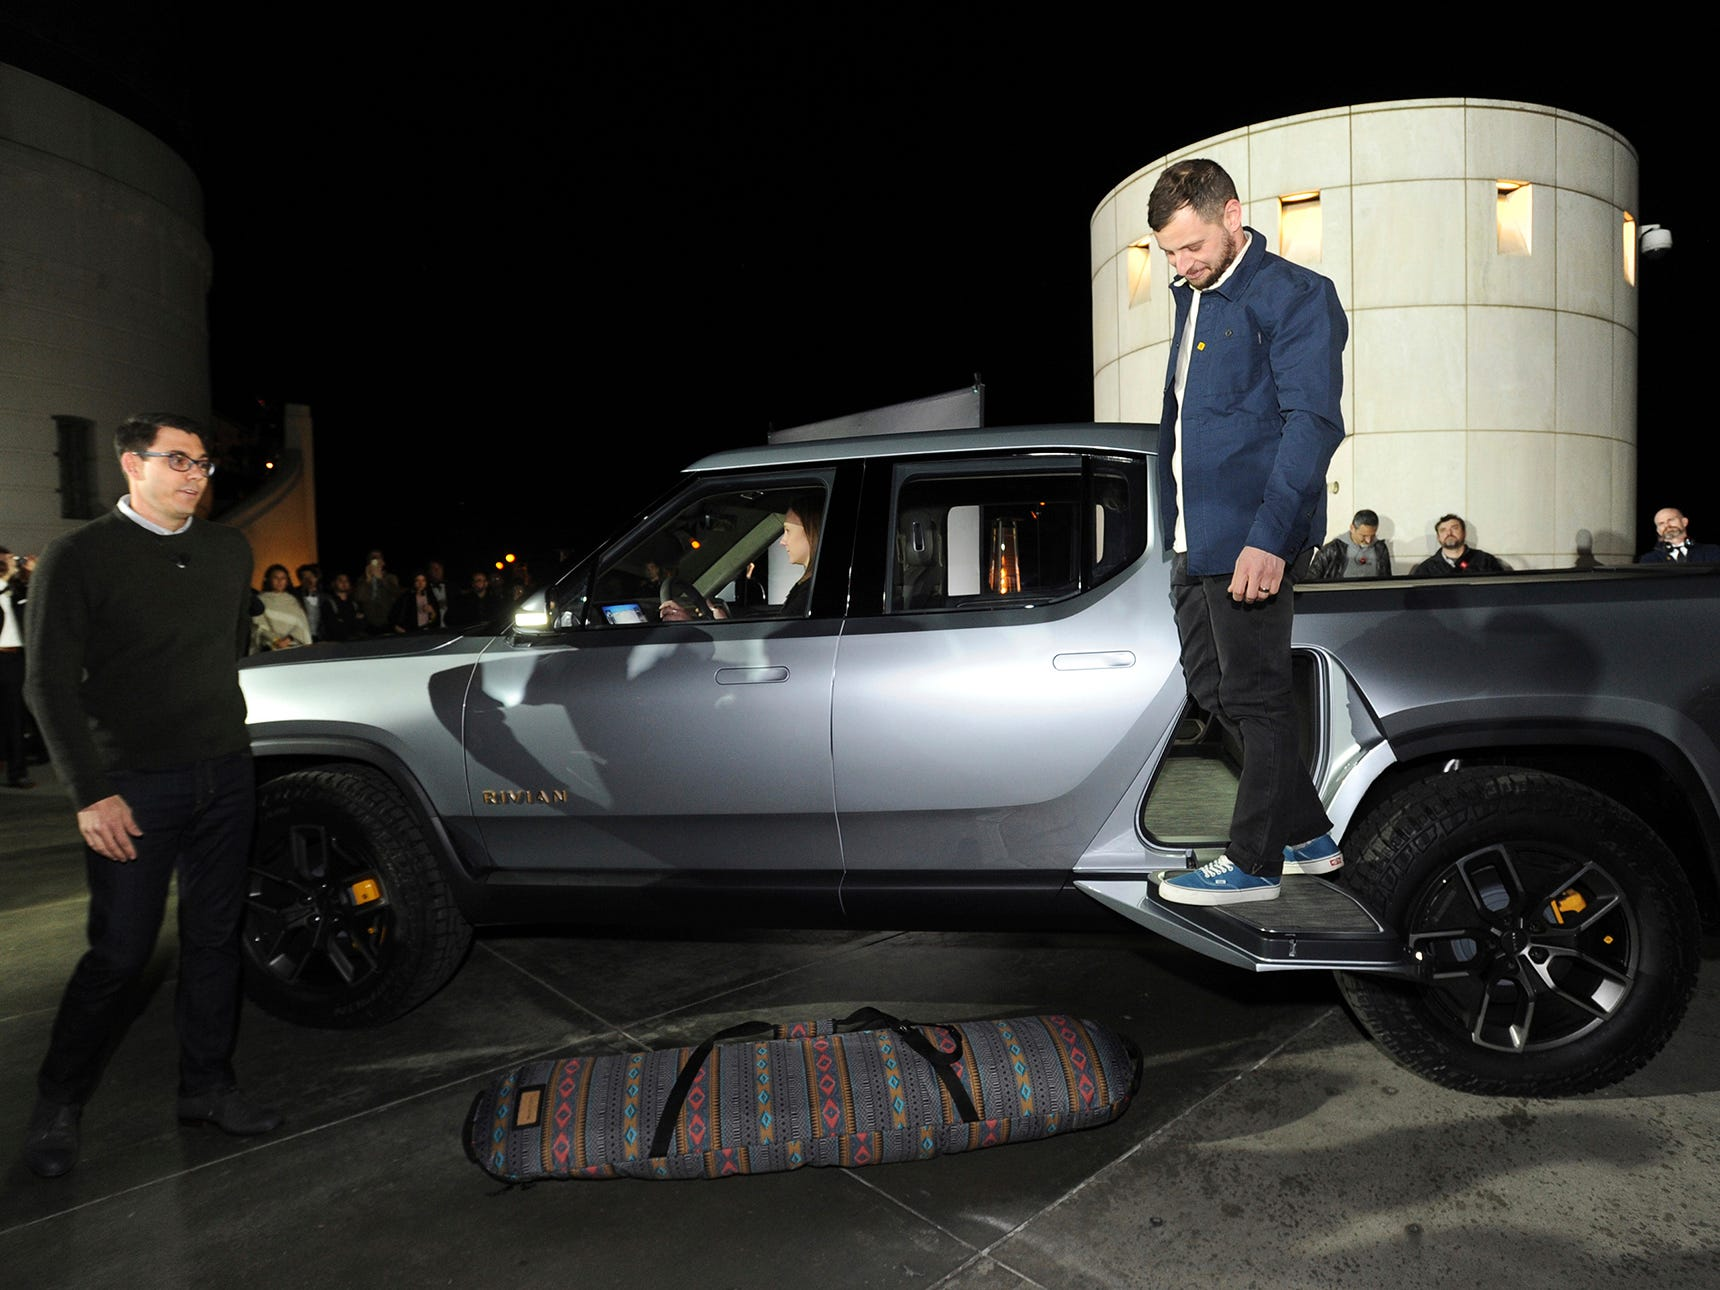 Rivian Founder and CEO RJ Scaringe, left, unveils the first-ever electric adventure vehicle at Griffith Observatory on Monday, Nov. 26, 2018 in Los Angeles.